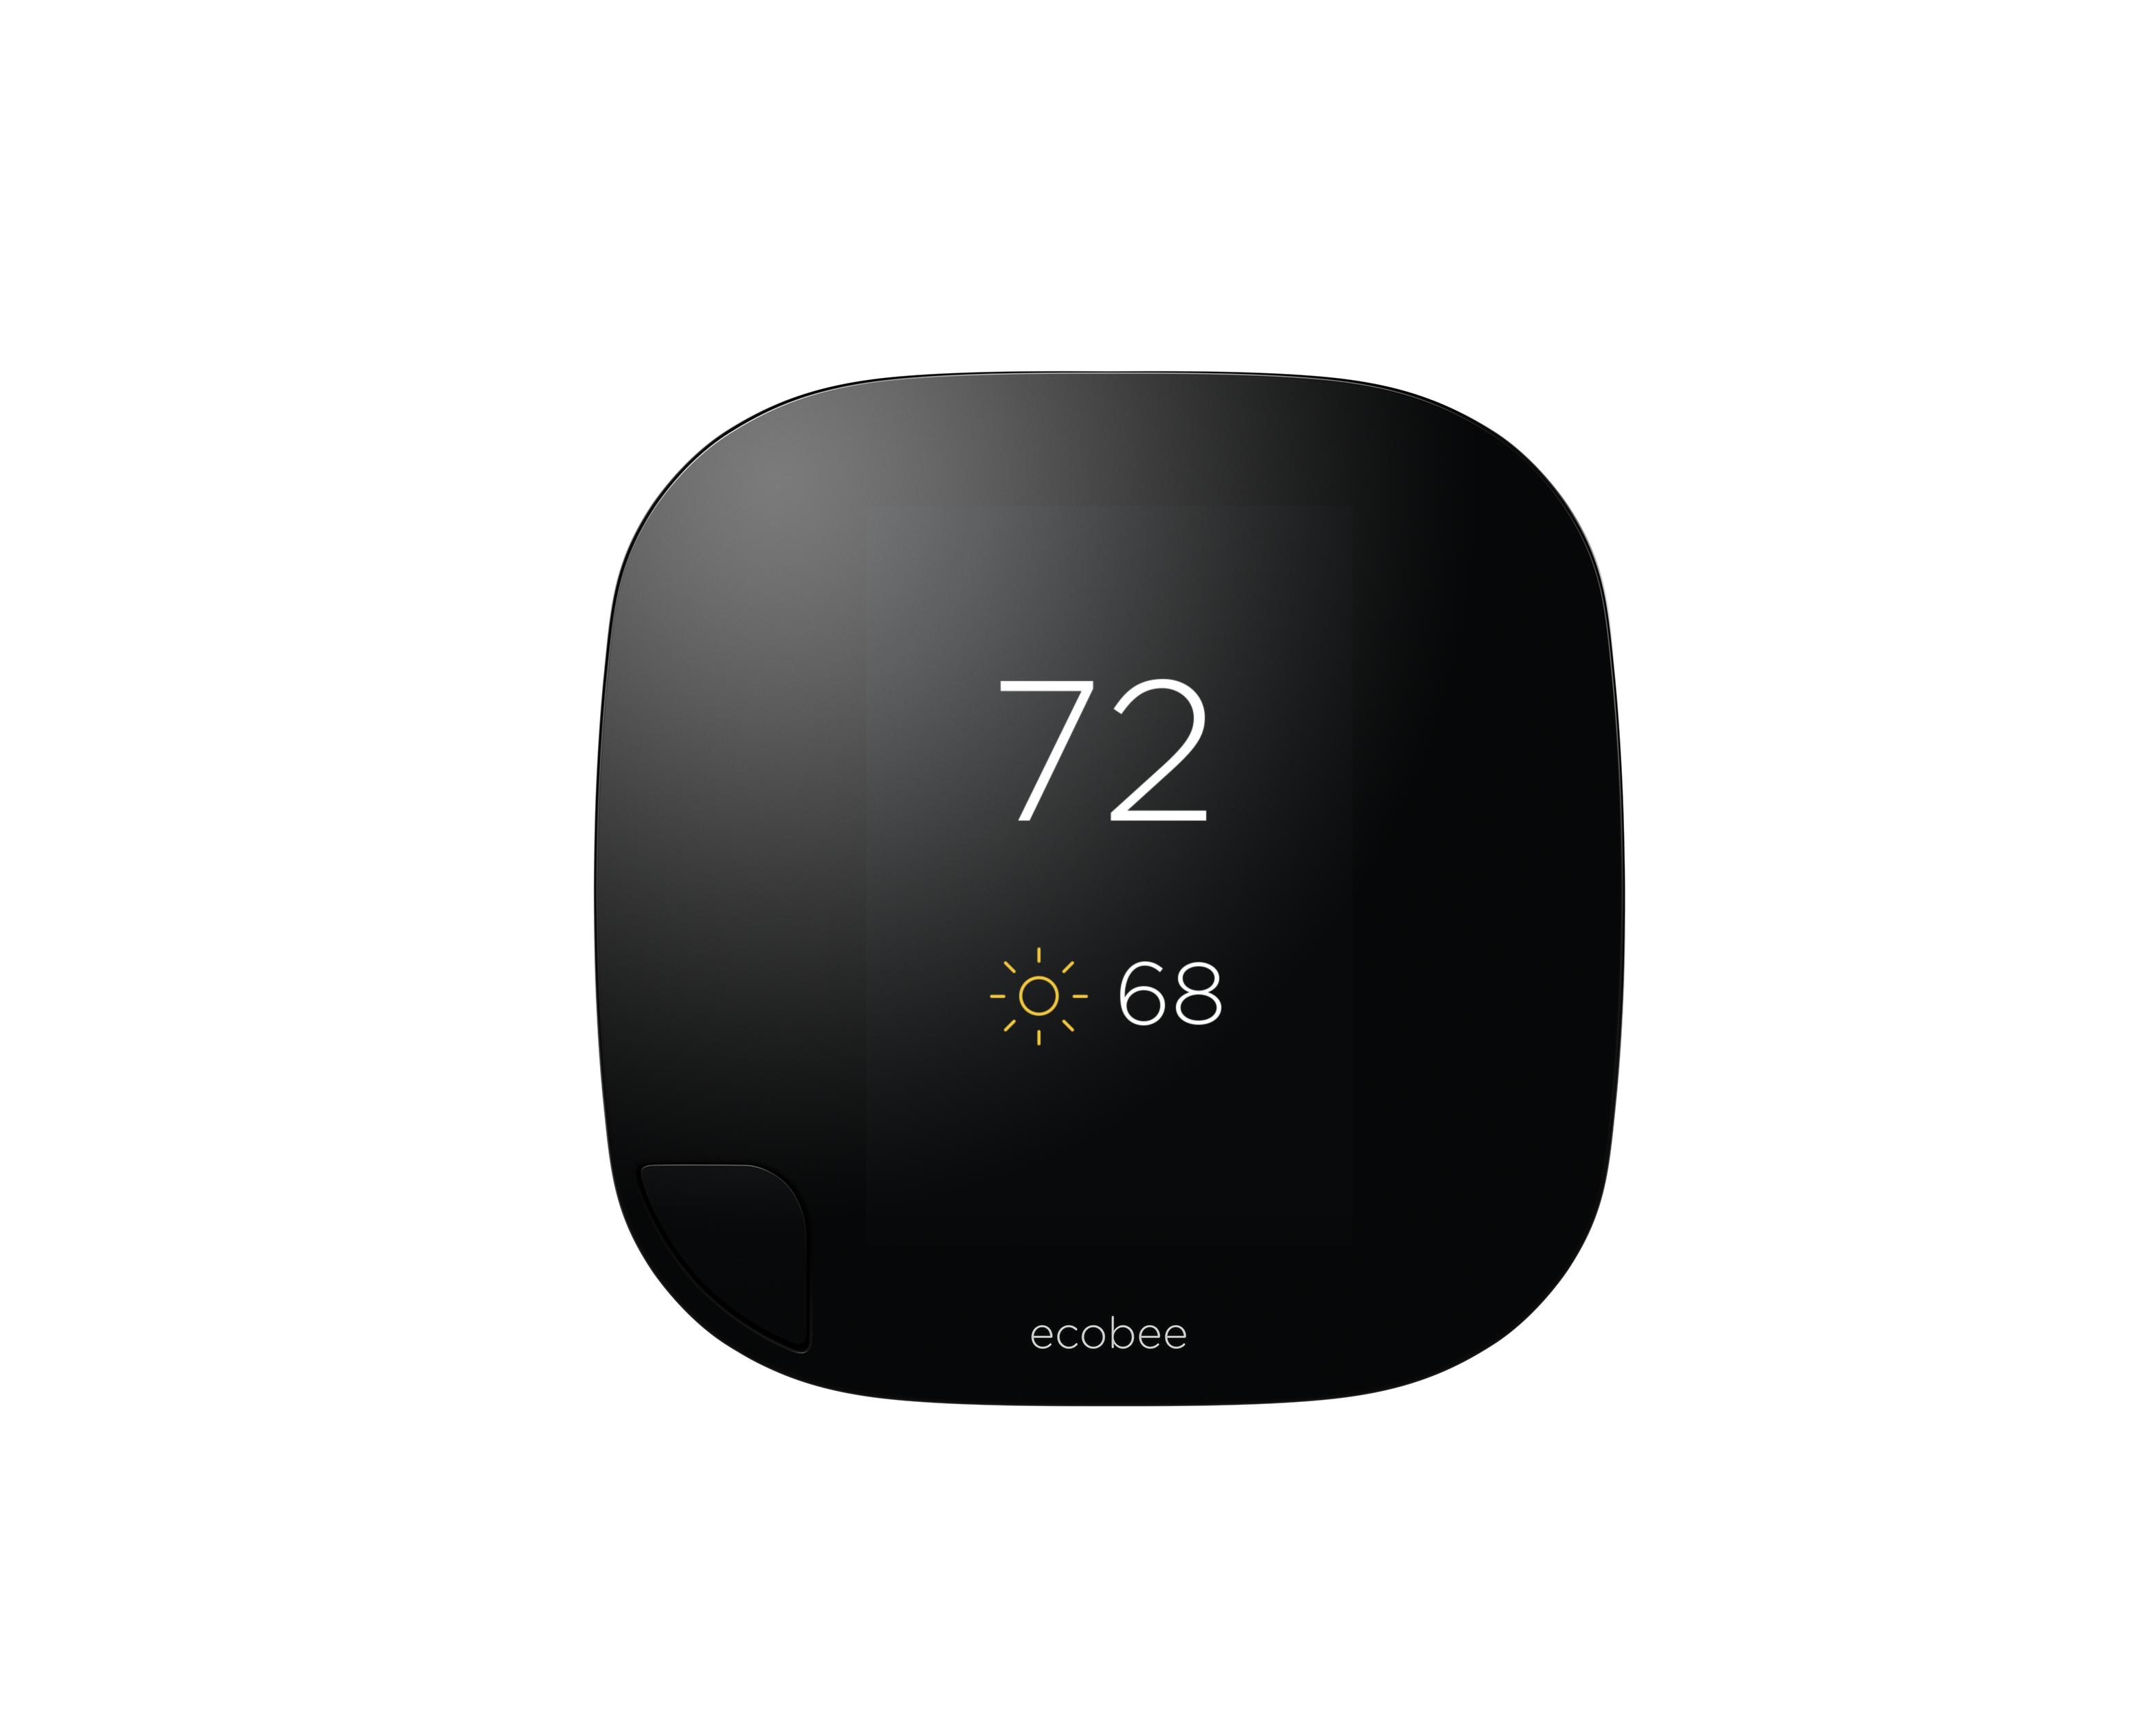 ecobee3_ThermostatIdleScreen